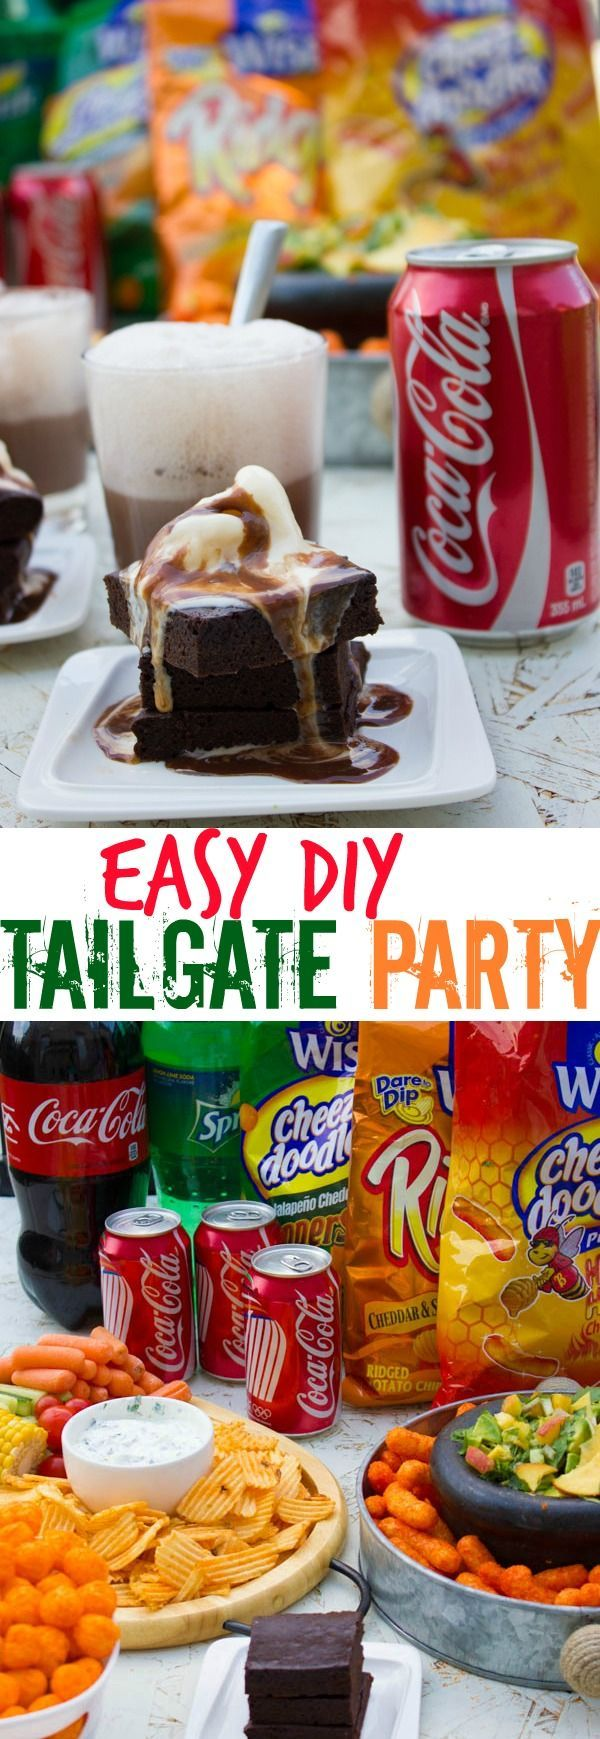 Easy DIY Tailgate Party Food. A combo of refreshing Yogurt herb dip, avocado peach salsa and a divine Coca-Cola Brownie! Serve with more Cola drinks, ice cream floats and more ice cream! #ad #GameTimeHosting http://www.twopurplefigs.com